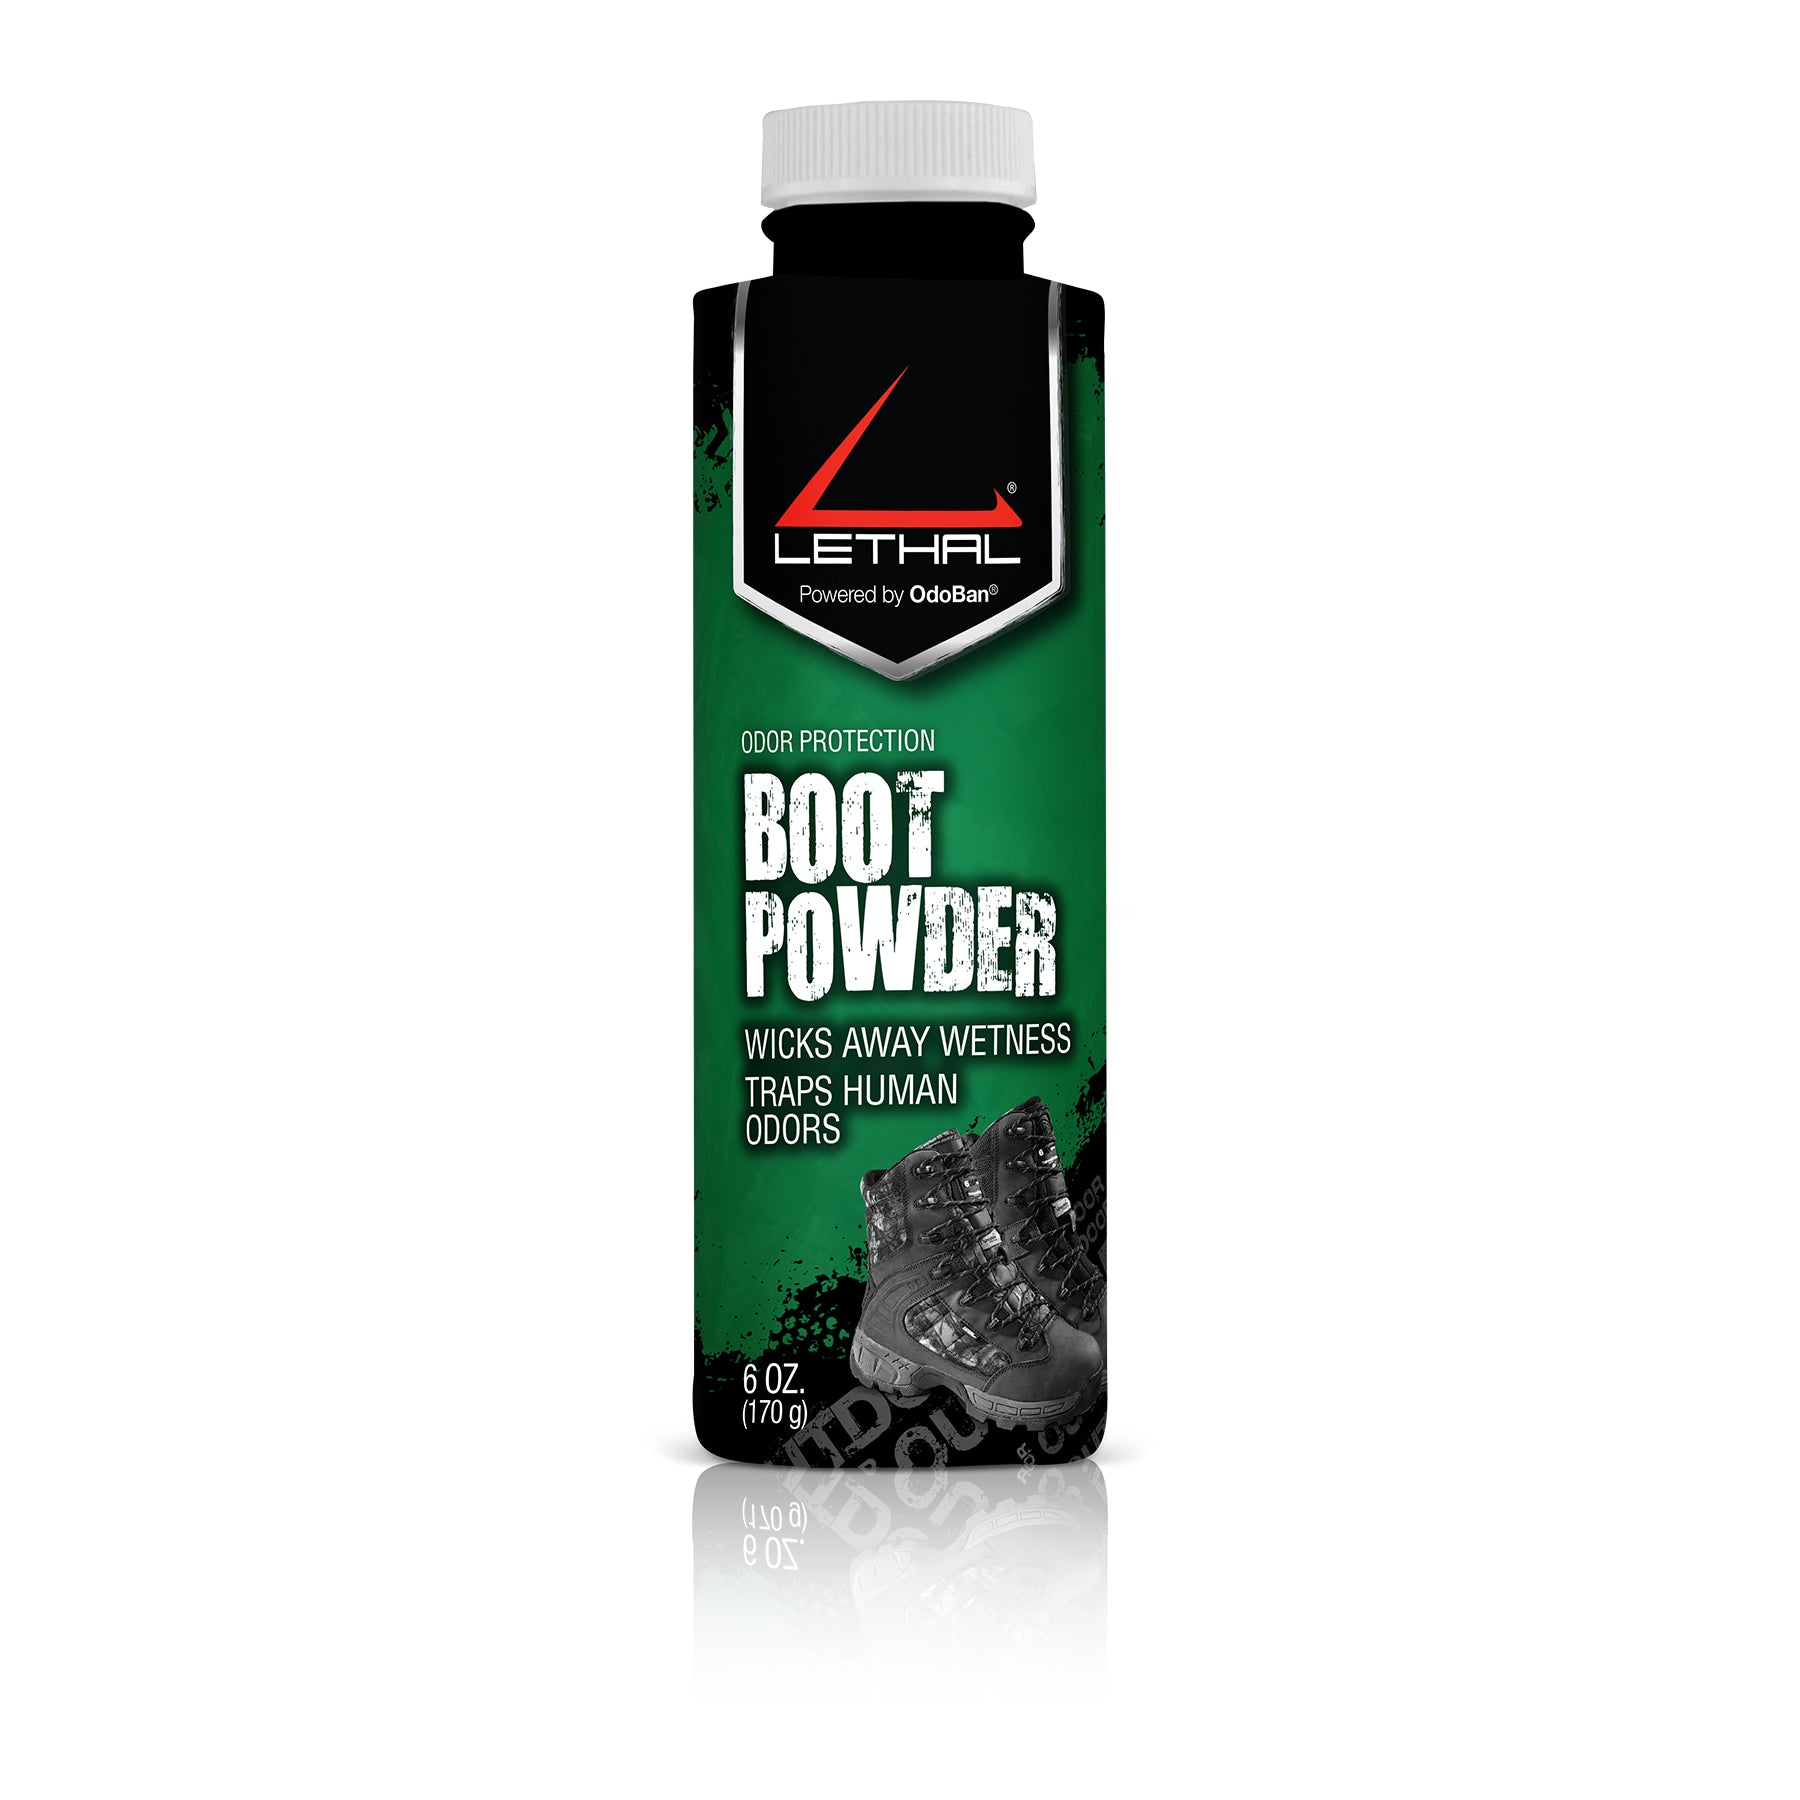 Lethal Boot Powder 6oz